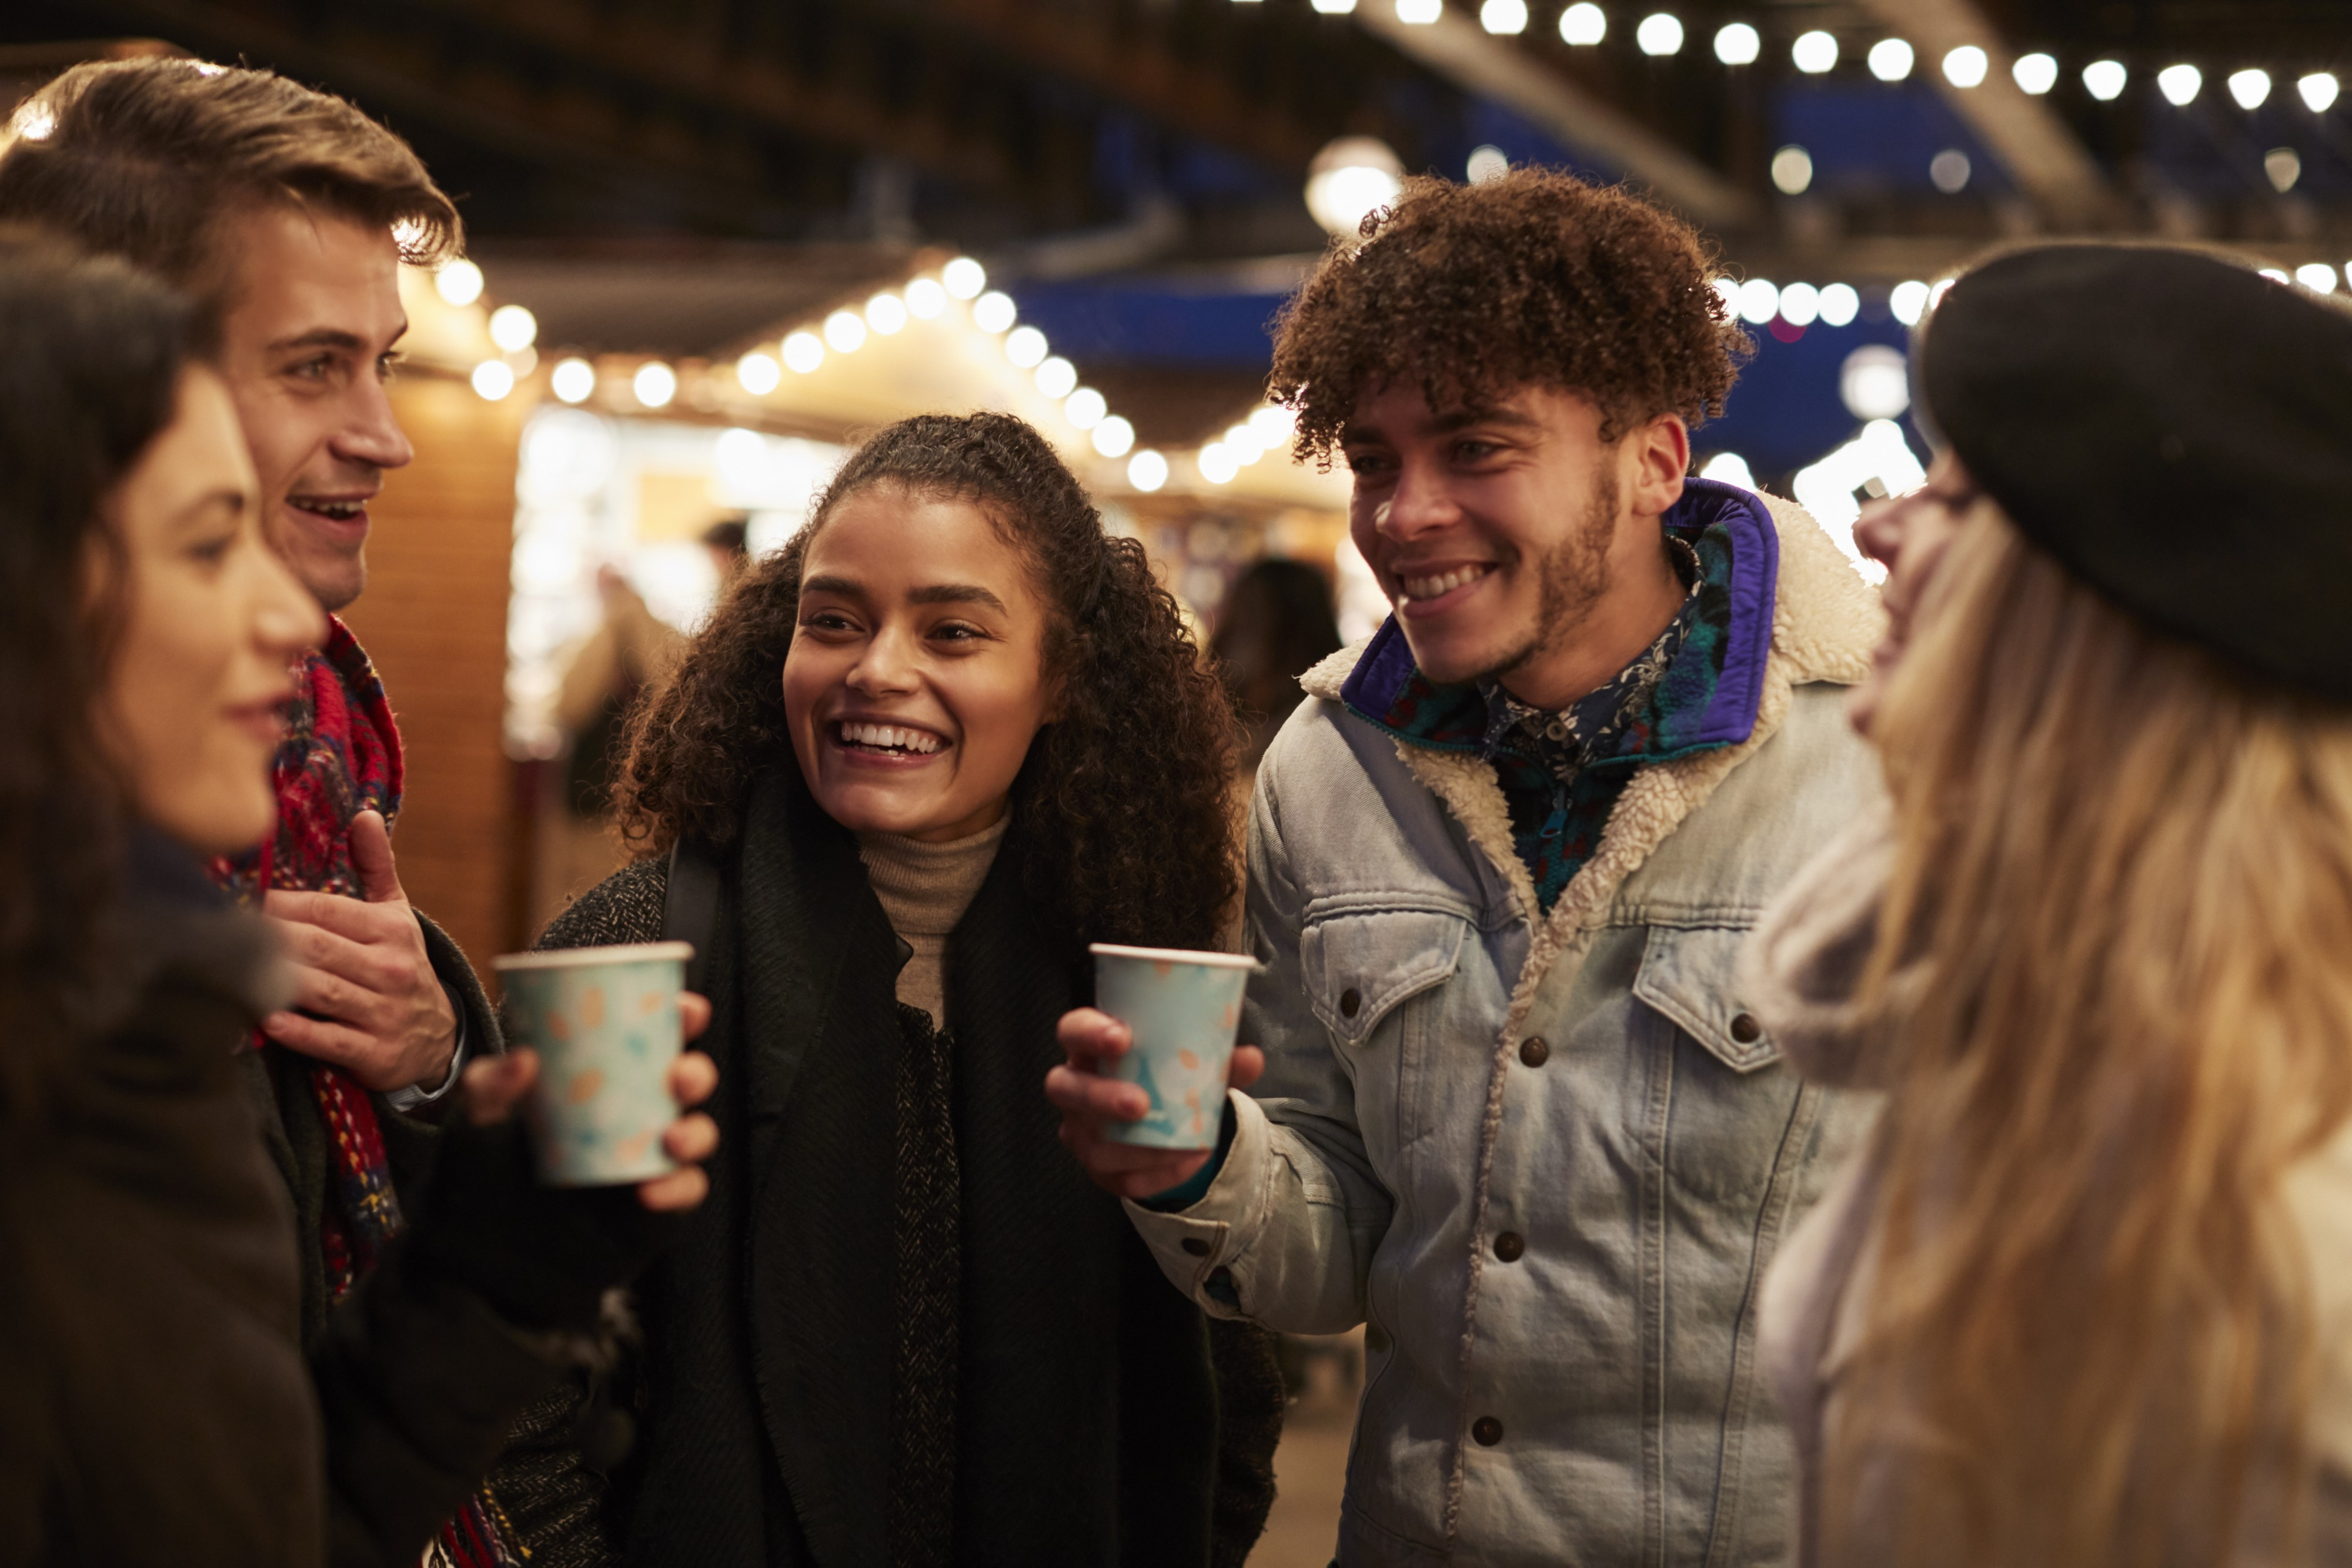 Group Of Friends Drinking Mulled Wine At PZ29EK3 (2)